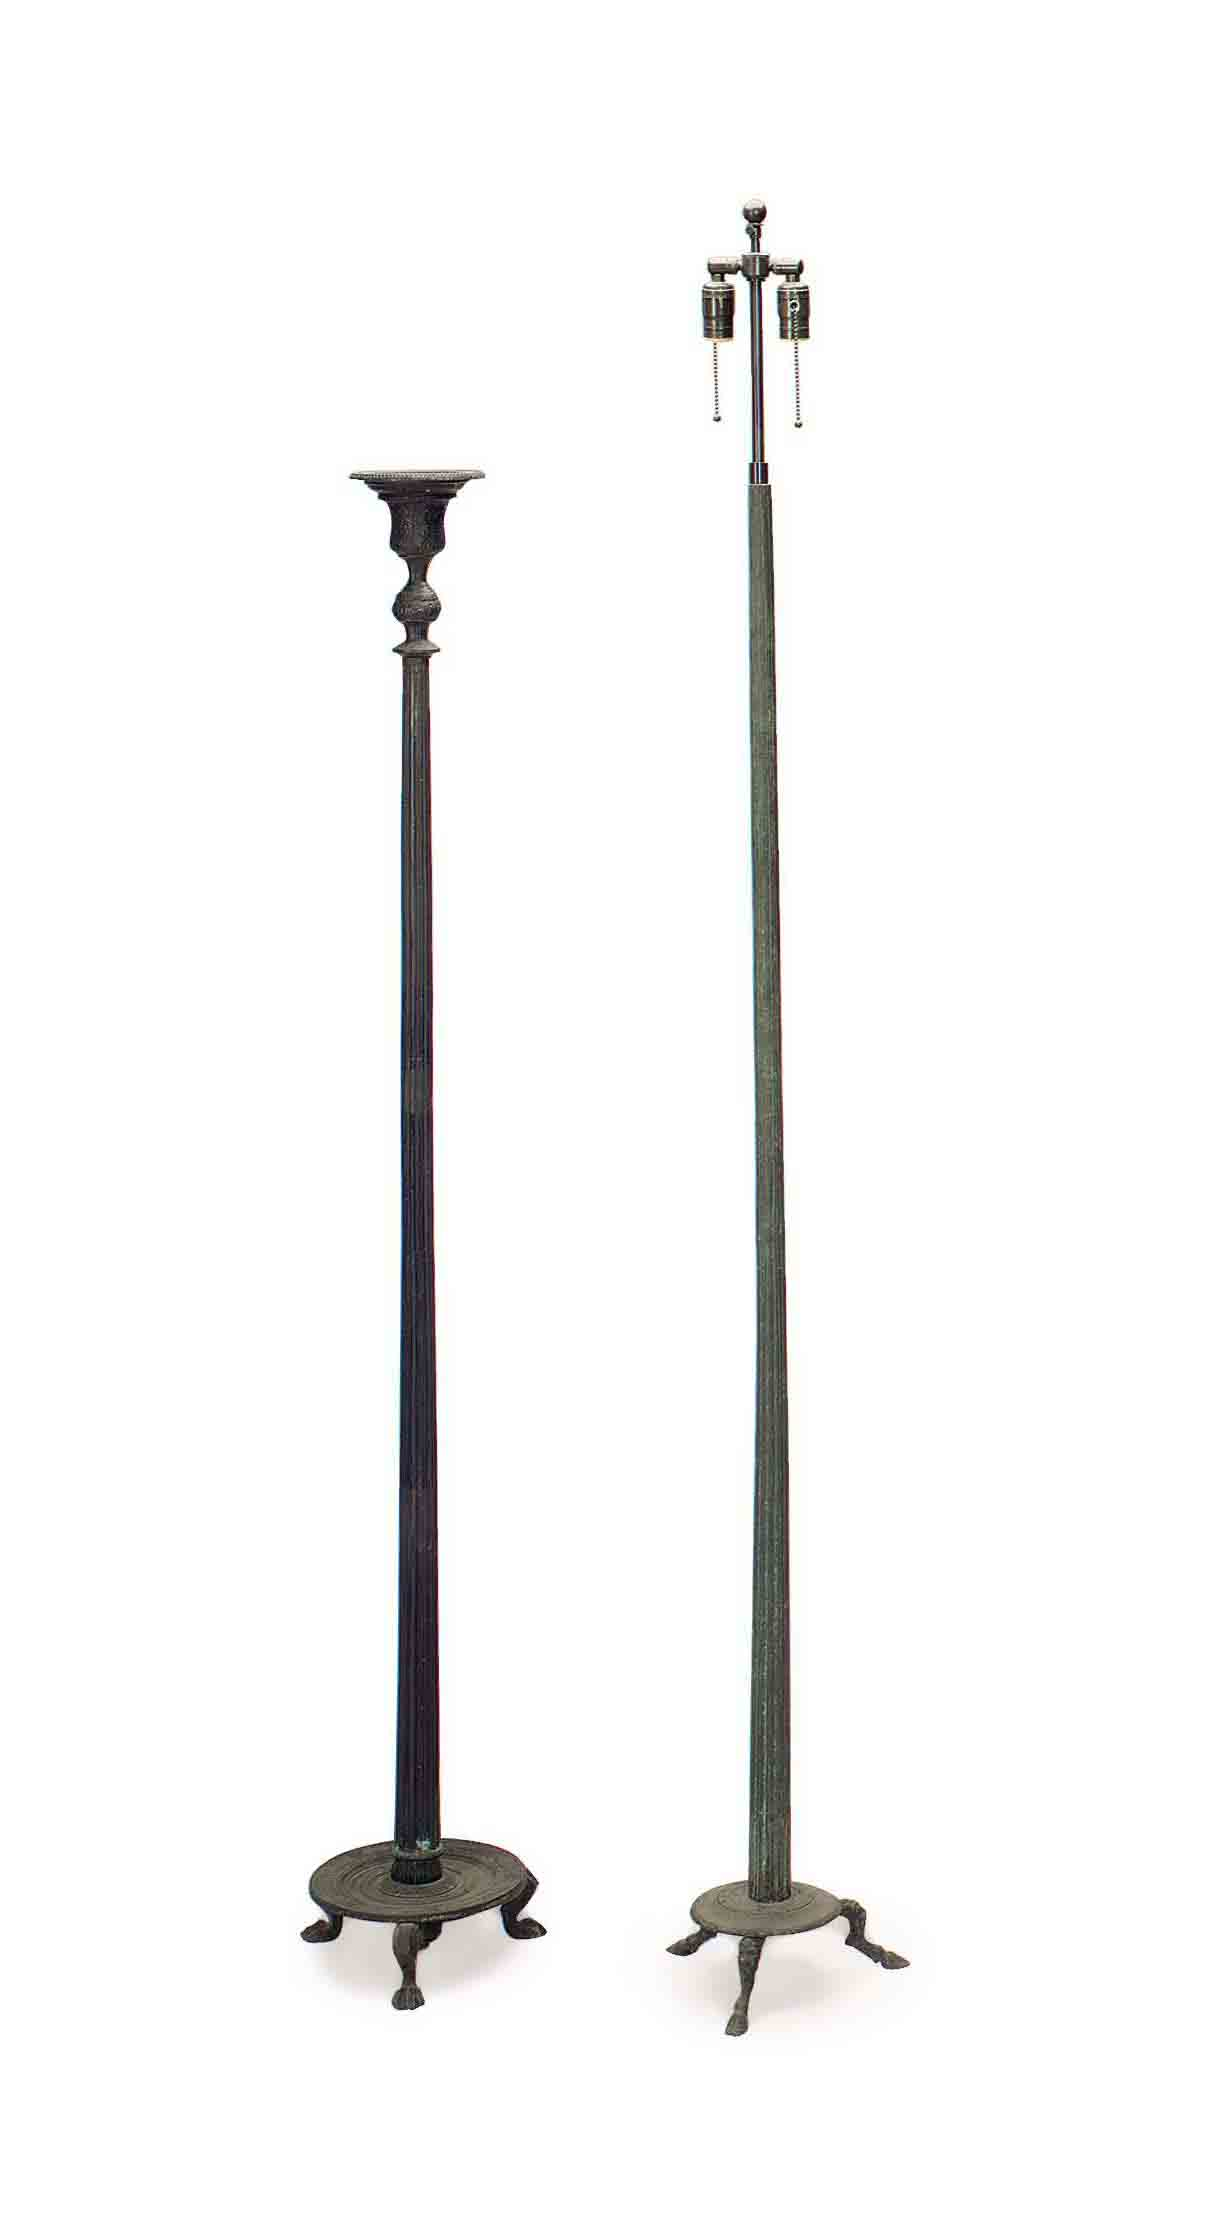 TWO ITALIAN PATINATED-BRONZE T